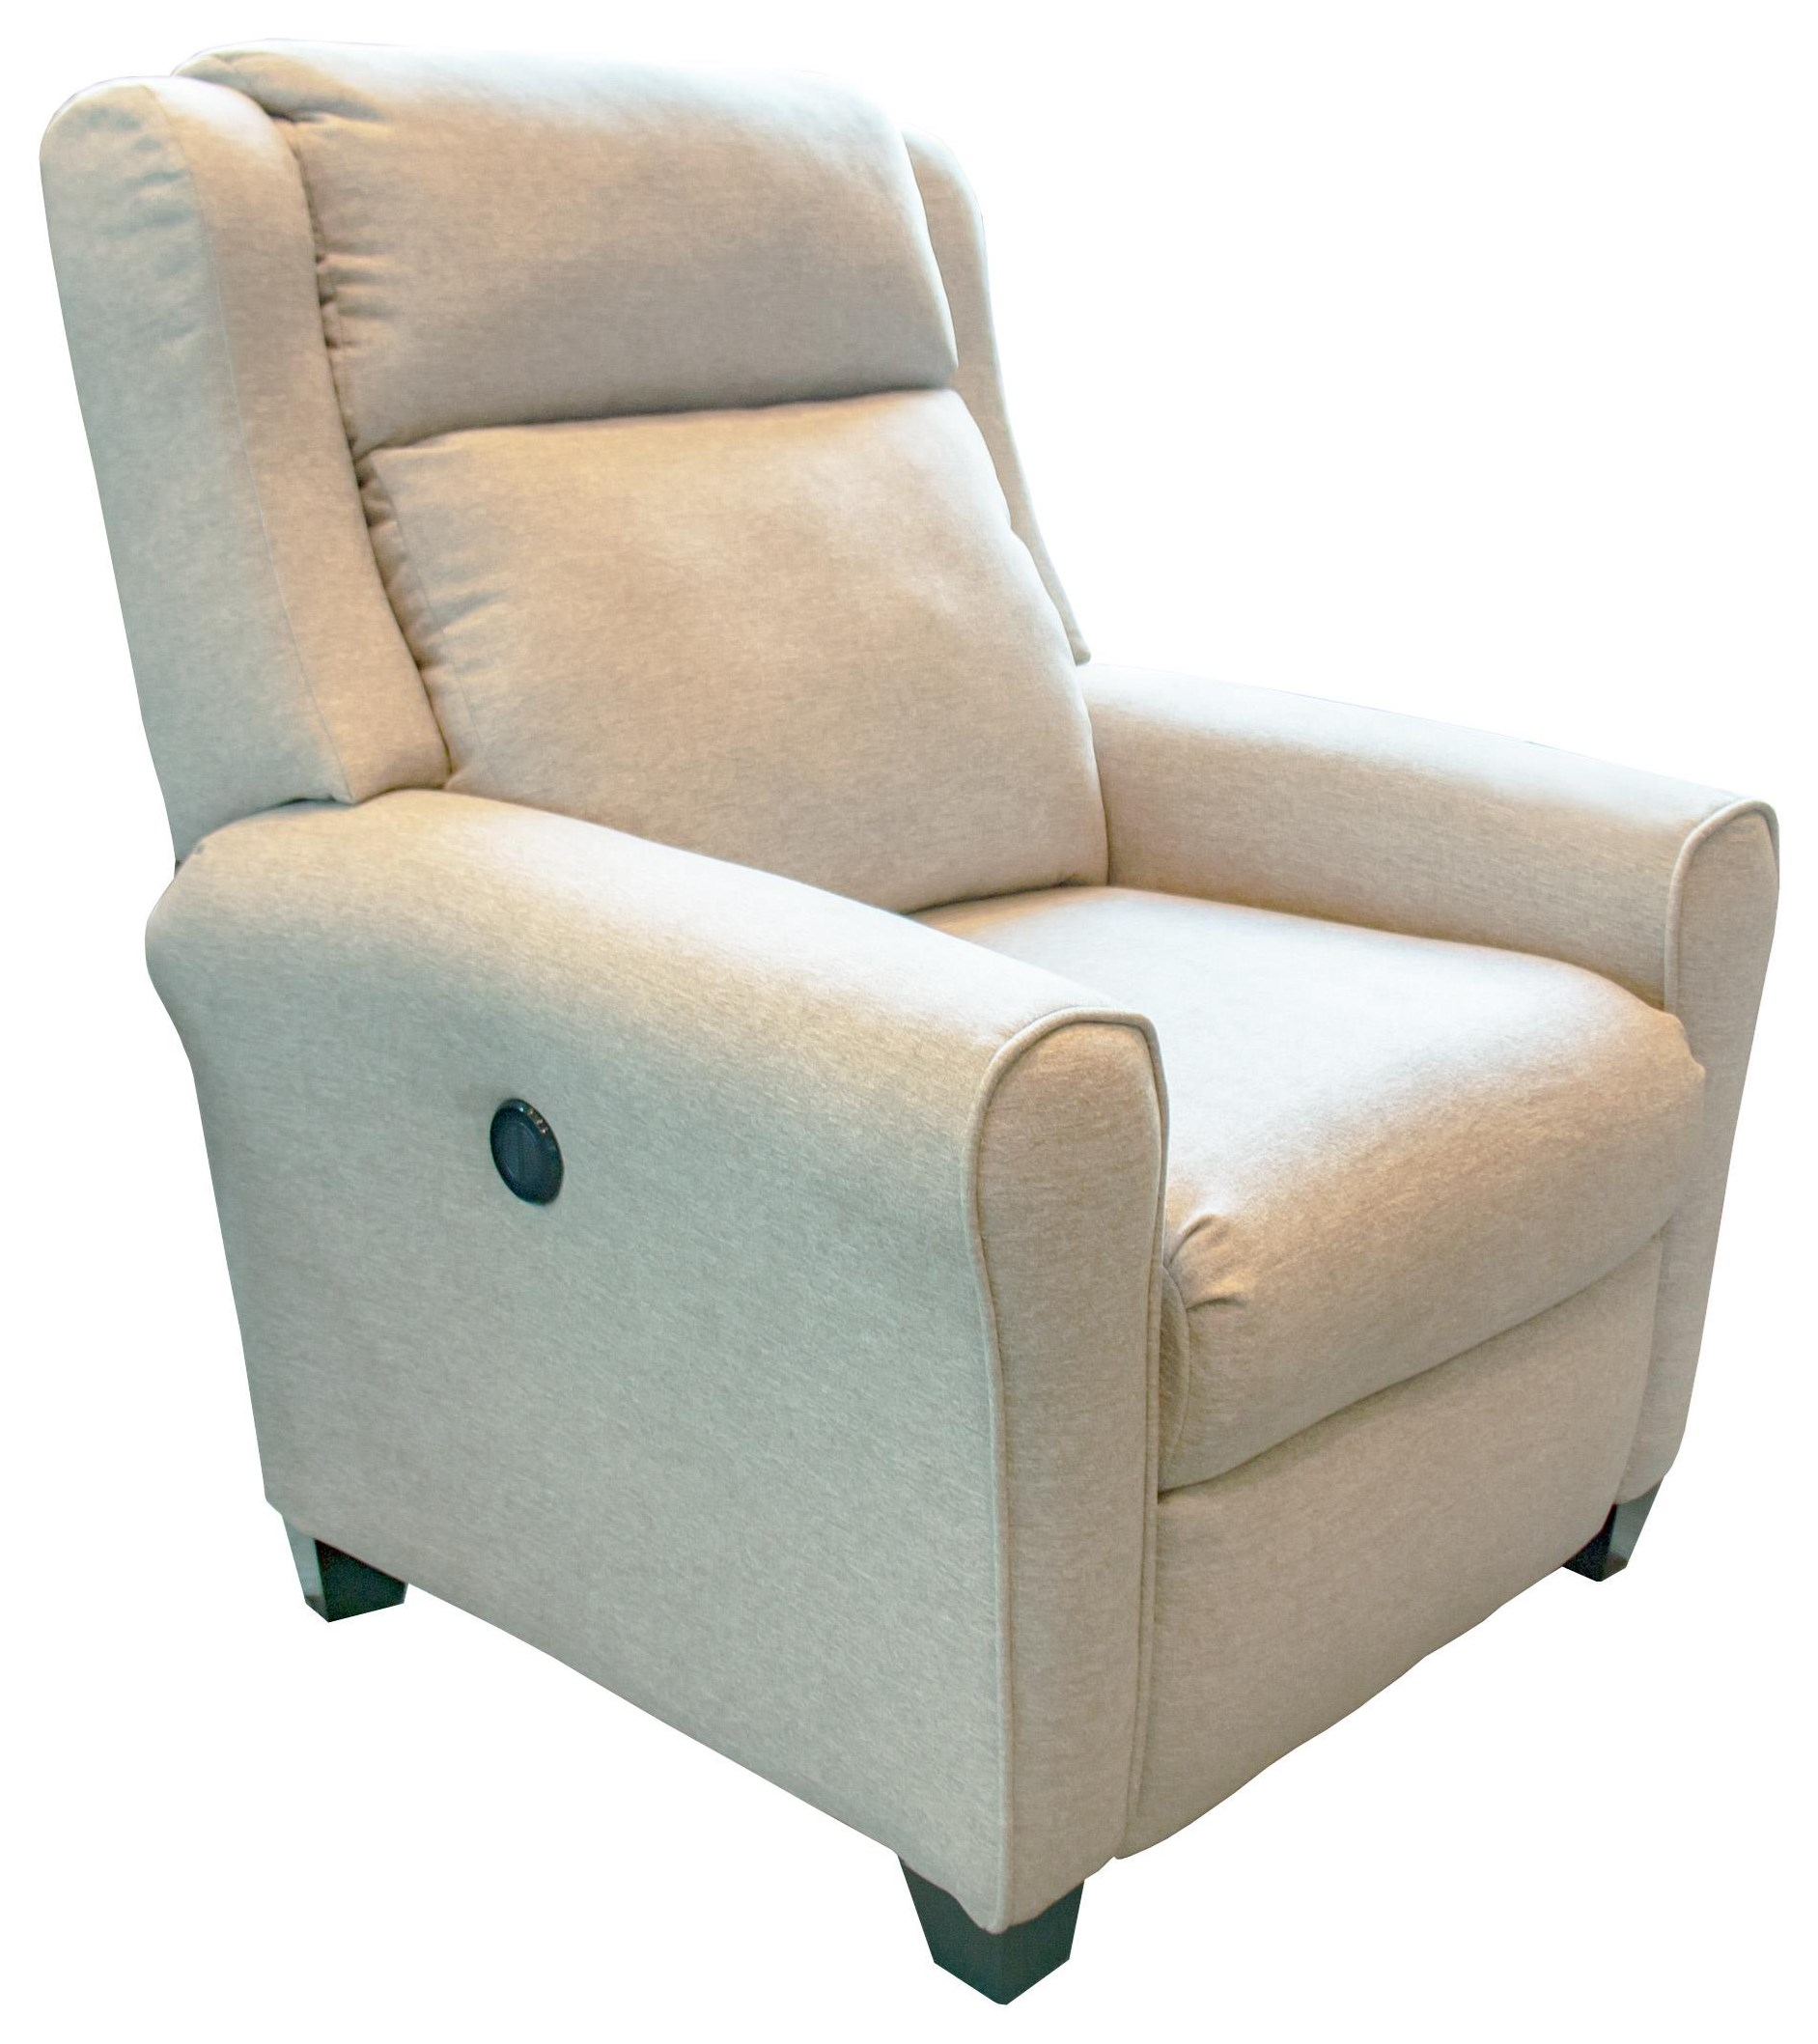 Beige Power High-Leg Recliner